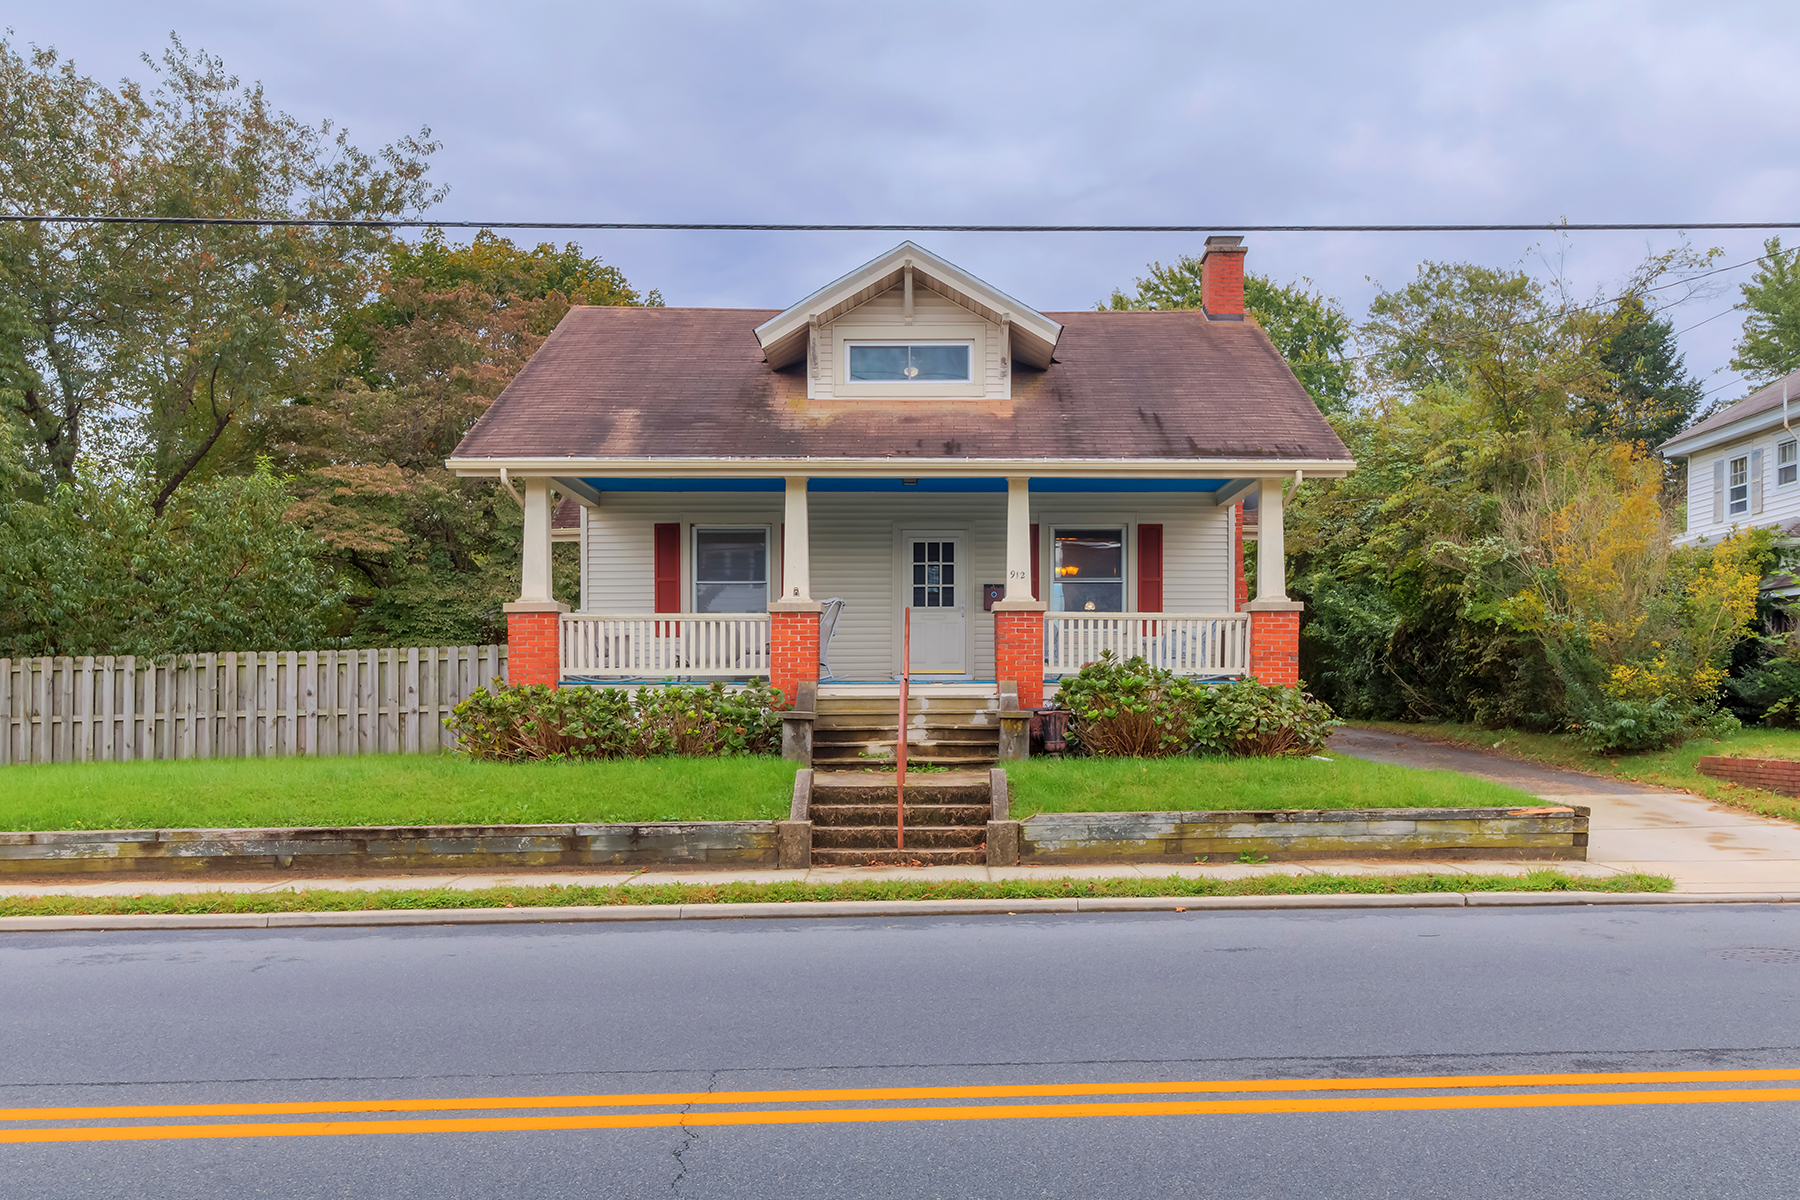 Single Family Home for Sale at 912 SE Front St , Milford, DE 19963 912 SE Front St Milford, Delaware 19963 United States